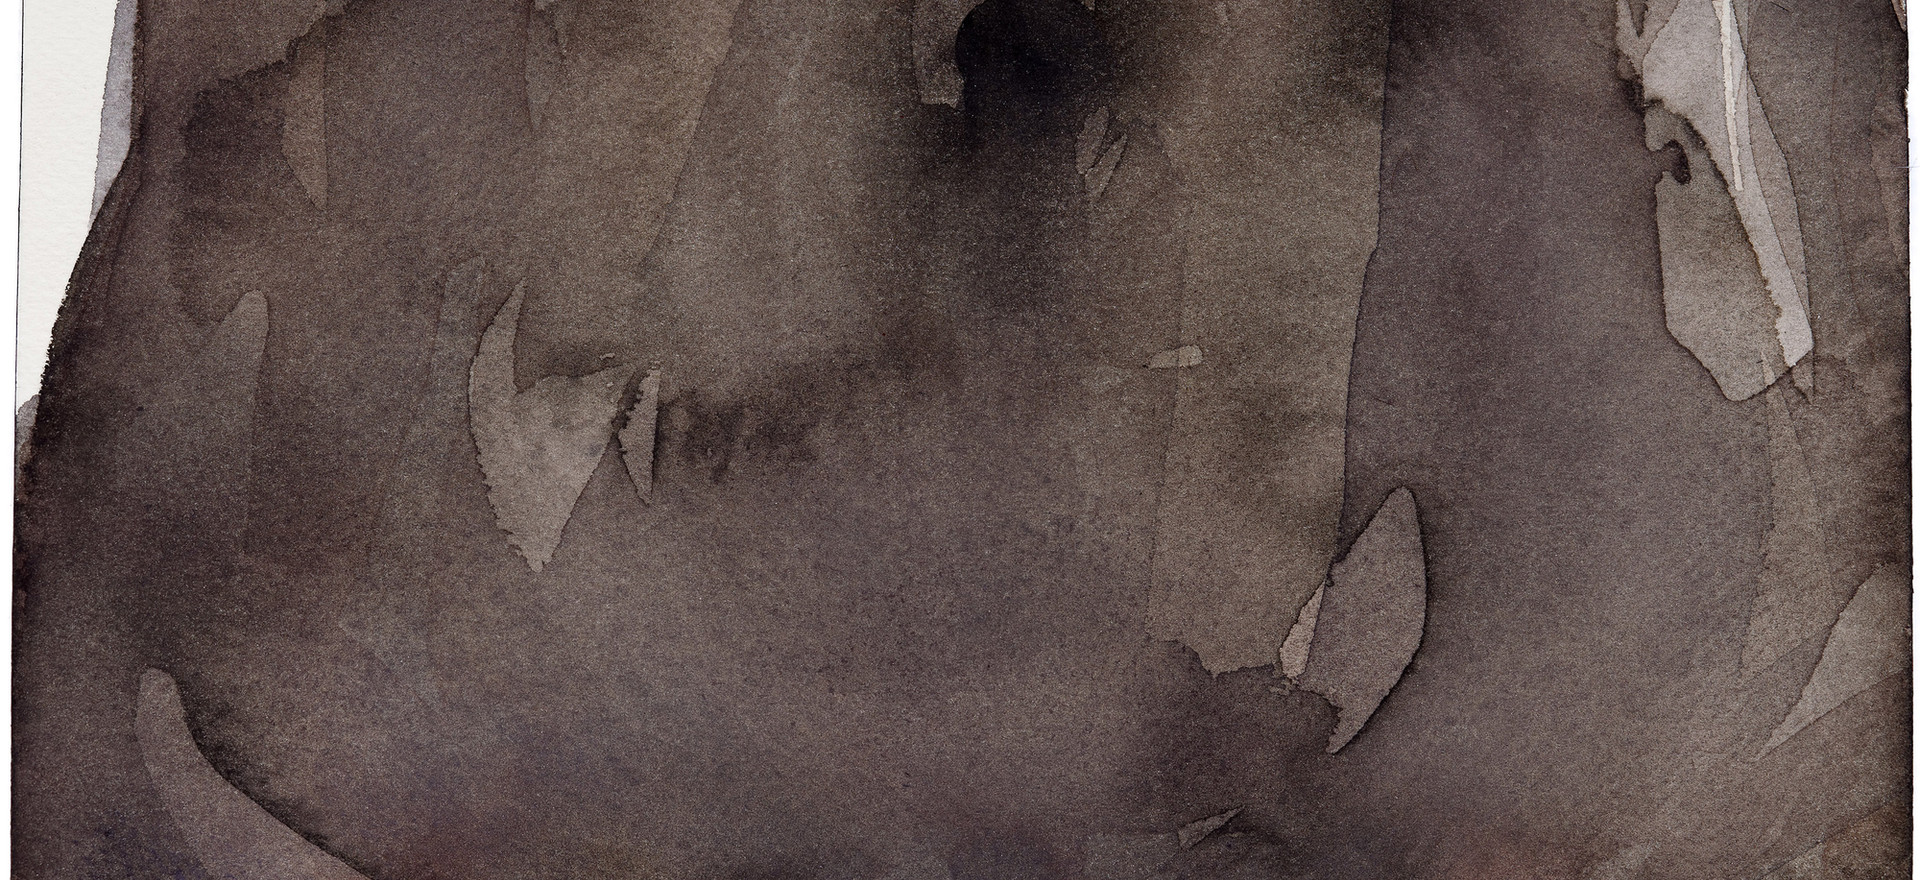 'Navel Series', 2012, watercolour on paper, 18 x 25.5 cm